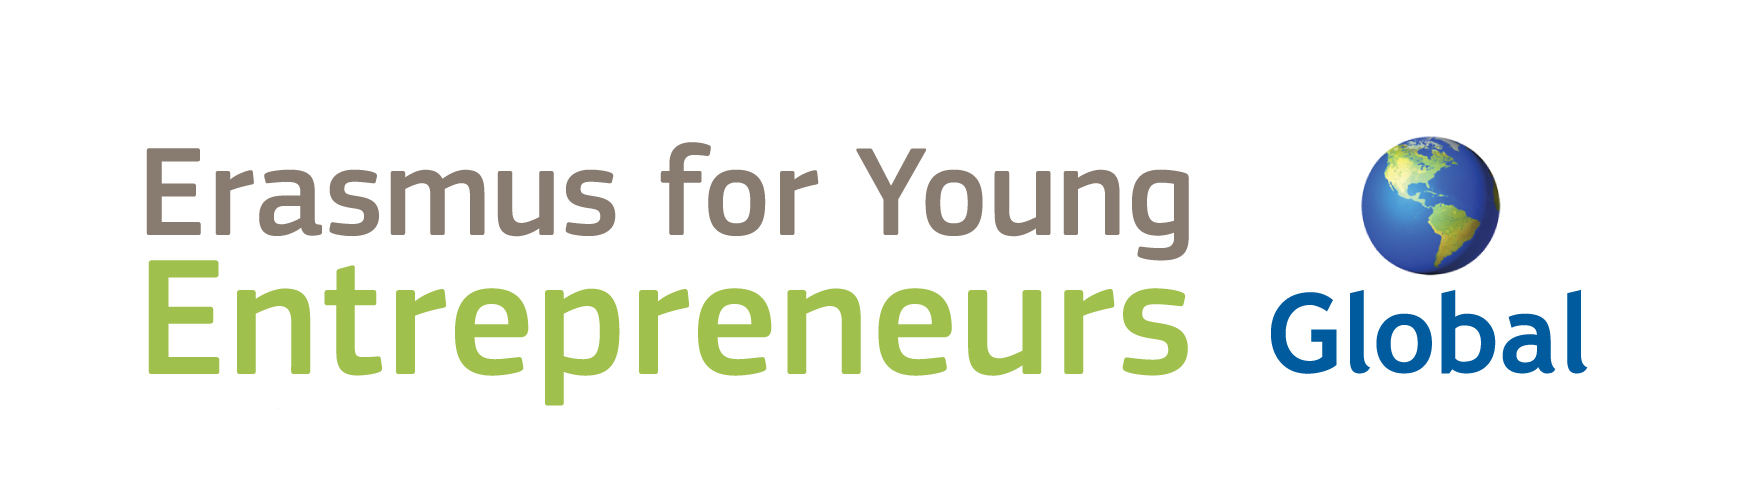 Erasmus for Young Entrepreneurs (EYE) Global